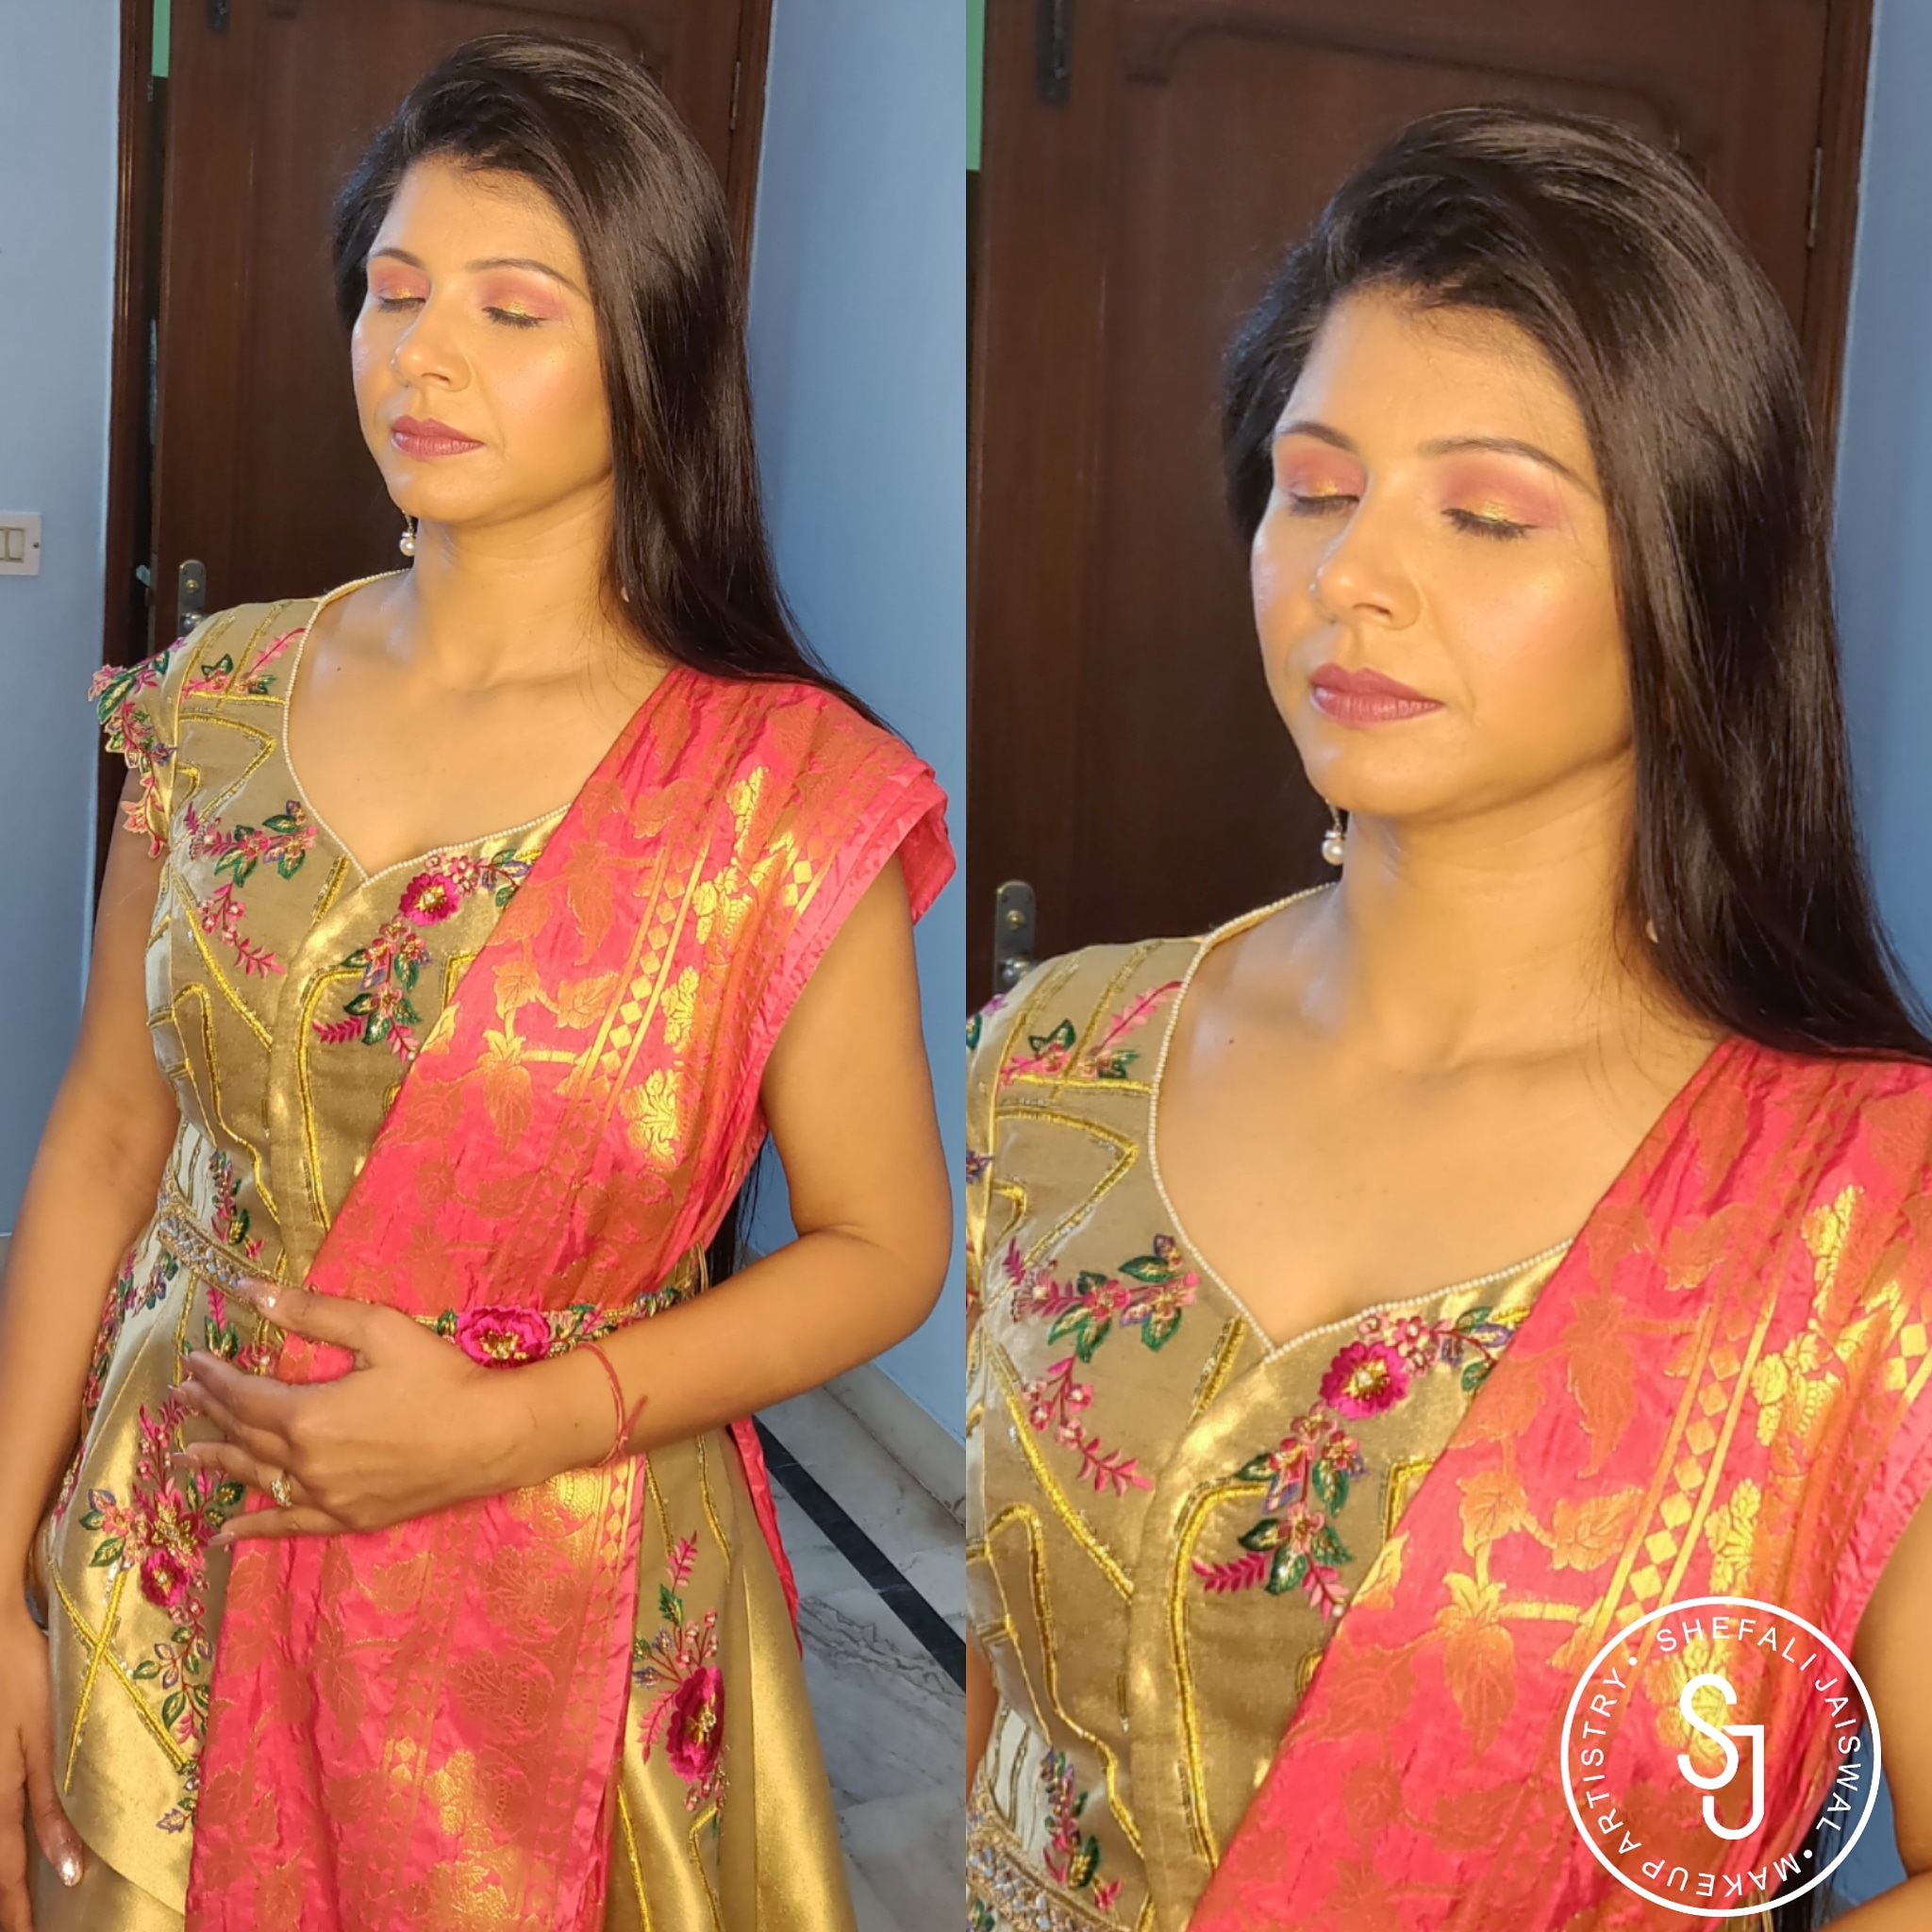 Beauticians on Neyena Parlour's,  are highly experienced in her core expertise and in trend of most recent Makeup, trend styling and hair shading, those are making a surprising and greatest look on the face of beautiful women and prettiest girls. In this technical world, the makeup & Beauty Parlour Services at home is now quickly accessible at your fingertips. Why go to parlour for traditional salon services and wait for appointment, whether you can simply book and appointment on any parlour using Neyena Parlour and also could be served by salon at home. In wedding & marriage parties, you girls and married women gets confused about their look, how they will look like, makeup, party stress, photoshoot, dressing. So, Neyena Parlour providing you salon at home & covers, the whole range of Beauty Parlour Services At Home. Neyena Parlour Services offers you a complete makeup & beauty service at home, for example, facial, hair, make-up, waxing, manicure-pedicure, salon at home in Mumbai, Delhi, noida, Gurgaon, Dehradun and substantially more beauty services at home in many more cities of India. We ensure a smooth, perfect, and clean makeup & beauty parlour at home. Our expert beauticians & makeup artists carried high quality, hygiene, and branded product for your service. Neyena Parlour is presently offering our Beauty services in maximum Cities of India, particularly Delhi, Dehradun, Gurgaon, Noida, Ghaziabad, Faridabad, Pune, Mumbai, Bangalore, Greater Noida and some more. At Neyena Parlour beauty services let you rid of waisting of time & money regarding your parlour or salon choices. Why you spending a lot of money for compromised beauty & makeup services, if you have Neyena Parlour for negotiations and quality. We offer you a complete beauty service at home, for example, facial, hair, make-up, waxing, manicure-pedicure, spa and many more beauty & makeup services at home. We ensure a smooth, perfect, and endless quality beauty & Makeup parlour at home we provide on-demand beauty parlor services at home. Our promise is to provide excellent beauty services to all women. At Neyena Parlour beauty services let you rid of waisting of time & money regarding your parlour or salon choices. Why you spending a lot of money for compromised beauty & makeup services, if you have Neyena Parlour for negotiations and quality. We offer you a complete beauty service at home, for example, facial, hair, make-up, waxing, manicure-pedicure, spa and many more beauty & makeup services at home. We ensure a smooth, perfect, and endless quality beauty & Makeup parlour at home we provide on-demand beauty parlor services at home. Our promise is to provide excellent beauty services to all women. Book bridal makeup artist and parlour at home in delhi ncr India Book bridal makeup artist and parlour at home in canaught place delhi ncr India Book bridal makeup artist and parlour at home in uttam nagar delhi ncr India Book bridal makeup artist and parlour at home in Rajiv chowk delhi ncr India Book bridal makeup artist and parlour at home in Anand vihar delhi ncr India Book bridal makeup artist and parlour at home in kaushambi delhi ncr India Book bridal makeup artist and parlour at home in vikas puri delhi ncr India Book bridal makeup artist and parlour at home in janak puri delhi ncr India Book bridal makeup artist and parlour at home in dwarka delhi ncr India Book bridal makeup artist and parlour at home in delhi kamla nagar ncr India Book bridal makeup artist and parlour at home in lajpat nagar delhi ncr India Book bridal makeup artist and parlour at home in punjabi bagh delhi ncr India Book bridal makeup artist and parlour at home in rajouri garden delhi ncr India Book bridal makeup artist and parlour at home in delhi ncr noida India Book bridal makeup artist and parlour at home in delhi ncr greater noida India Book bridal makeup artist and parlour at home in delhi ncr gajipur India Book bridal makeup artist and parlour at home in delhi ncr faridabad India Book bridal makeup artist and parlour at home in delhi ncr gaur city India Book bridal makeup artist and parlour at home in delhi ncr ghaziabad India Book bridal makeup artist and parlour at home in nawada delhi ncr India Book bridal makeup artist and parlour at home in bindapur delhi ncr India Book bridal makeup artist and parlour at home in sitapuri delhi ncr India Book bridal makeup artist and parlour at home in Laxmi nagar delhi ncr India Book bridal makeup artist and parlour at home in okhla delhi ncr India Book bridal makeup artist and parlour at home in saket delhi ncr India Book bridal makeup artist and parlour at home in delhi ncr gurugram India Book bridal makeup artist and parlour at home in delhi ncr guragon India Book bridal makeup artist and parlour at home in delhi ncr palam India Book bridal makeup artist and parlour at home in rajokari delhi ncr India Book bridal makeup artist and parlour at home in delhi ncr badarpur India Book bridal makeup artist and parlour at home in delhi ncr chanakyapuri India Book bridal makeup artist and parlour at home in mehrauli delhi ncr India Book bridal makeup artist and parlour at home in nangloi delhi ncr India Book bridal makeup artist and parlour at home in rohini delhi ncr India Book bridal makeup artist and parlour at home in vasant kunj delhi ncr India Book bridal makeup artist and parlour at home in karol bagh delhi ncr India Book bridal makeup artist and parlour at home in model town delhi ncr India Book bridal makeup artist and parlour at home in munirka delhi ncr India Book bridal makeup artist and parlour at home in najafgarh delhi ncr India Book bridal makeup artist and parlour at home in greater kailash delhi ncr India Book bridal makeup artist and parlour at home in pitam pura delhi ncr India Book bridal makeup artist and parlour at home in shalimar bagh delhi ncr India Book bridal makeup artist and parlour at home in patparganj delhi ncr India Book bridal makeup artist and parlour at home in delhi cantt delhi ncr India Book bridal makeup artist and parlour at home in beghum pur delhi ncr India Book bridal makeup artist and parlour at home in inder puri delhi ncr India Book bridal makeup artist and parlour at home in shahpur jat delhi ncr India Book bridal makeup artist and parlour at home in shahdara delhi ncr India Book bridal makeup artist and parlour at home in bawana delhi ncr India Book bridal makeup artist and parlour at home in wazirabad delhi ncr India Book bridal makeup artist and parlour at home in sarai kale khan delhi ncr India Book bridal makeup artist and parlour at home in dhaka village delhi ncr India Book bridal makeup artist and parlour at home in ghitorni delhi ncr India Book bridal makeup artist and parlour at home in sultanpur delhi ncr India Book bridal makeup artist and parlour at home in motibagh delhi ncr India Book bridal makeup artist and parlour at home in moti nagar delhi ncr India Book bridal makeup artist and parlour at home in karmpura delhi ncr India Book bridal makeup artist and parlour at home in ghazipur delhi ncr India Book bridal makeup artist and parlour at home in sainik farm delhi ncr India Book bridal makeup artist and parlour at home in mundka delhi ncr India Book bridal makeup artist and parlour at home in punjabi bagh delhi ncr India Book bridal makeup artist and parlour at home in saraswati vihar delhi ncr India Book bridal makeup artist and parlour at home in tihar village delhi ncr India Book bridal makeup artist and parlour at home in mayapuri delhi ncr India Book bridal makeup artist and parlour at home in dabri delhi ncr India Book bridal makeup artist and parlour at home in pandav nagar delhi ncr India Book bridal makeup artist and parlour at home in govindpuri delhi ncr India Book bridal makeup artist and parlour at home in yamuna vihar delhi ncr India Book bridal makeup artist and parlour at home in chhawla delhi ncr India Book bridal makeup artist and parlour at home in hastsal delhi ncr India Book bridal makeup artist and parlour at home in netaji subhash palace delhi ncr India Neyena Parlour bridal makeup artist in Delhi bridal makeup artist in delhi with price bridal makeup artist in delhi photos bridal makeup artist in delhi list bridal makeup artist in delhi images bridal makeup artist in delhi name wedding makeup artist in delhi best bridal makeup artist in delhi top bridal makeup artist in delhi best bridal makeup artist in delhi with price bengali bridal makeup artist in delhi bridal makeup artist in south delhi famous bridal makeup artist in delhi best bridal makeup artist in delhi ncr bridal makeup artist in east delhi bridal makeup artist in dwarka delhi freelance bridal makeup artist in delhi bridal makeup artist in west delhi bridal makeup artist in north delhi top bridal makeup artist in delhi ncr best bridal makeup artist in delhi 2020 adhira by asha panthari- bridal makeup artist in west delhi best bridal makeup artist in delhi cost best bridal makeup artist in delhi videos best bridal makeup artist in delhi images best bridal makeup artist in delhi 2020 best bengali bridal makeup artist in delhi best natural bridal makeup artist in delhi cheap best bridal makeup artist in delhi 15 best bridal makeup artist in delhi best indian bridal makeup artist in delhi best wedding makeup artist in delhi top best bridal makeup artists in delhi best bridal makeup artist in west delhi best bridal makeup artist in south delhi best bridal makeup artist in east delhi with price best bridal makeup artist in east delhi cheap bridal makeup artist in delhi riya vashist - bridal makeup artist in delhi new delhi delhi preeti & pooja makeovers - best bridal makeup artist in delhi delhi bridal makeup artist in delhi packages rates party event look delhi bridal makeup artist in east delhi with price makeup artist in delhi for bridal best makeup artist in delhi for bridal top five bridal makeup artist in delhi good bridal makeup artist in delhi bridal makeup artist poonam mishra delhi preeti & pooja makeovers - best bridal makeup artist in delhi दिल्ली bridal makeup artist in delhi ncr best bridal makeup artist in north delhi best bridal makeup artist in new delhi natural bridal makeup artist in delhi no 1 bridal makeup artist in delhi list of bridal makeup artist in delhi bridal makeup artist delhi pooja sharma delhi riya vashist - bridal makeup artist in delhi top rated bridal makeup artist in delhi top 10 bridal makeup artist in delhi top ten bridal makeup artist in delhi top 20 bridal makeup artist in delhi top 3 bridal makeup artist in delhi top wedding makeup artist in delhi bridal makeup bridal makeup looks bridal makeup artist bridal makeup near me bridal makeup prices bridal makeup tutorial bridal makeup ideas bridal makeup cost bridal makeup contract bridal makeup and hair bridal makeup kit bridal makeup tips bridal makeup packages bridal makeup chicago bridal makeup classes bridal makeup trial bridal makeup before and after bridal makeup houston bridal makeup services bridal makeup products bridal makeup pinterest bridal makeup artist near me bridal makeup atlanta bridal makeup artist nyc bridal makeup artist salary bridal makeup american bridal makeup artist jobs bridal makeup asian bridal makeup and hair near me bridal makeup artist los angeles bridal makeup artist chicago bridal makeup austin bridal makeup artist contract bridal makeup average cost bridal makeup artist in chennai bridal makeup artists in hyderabad bridal makeup artist bay area bridal makeup application bridal makeup at sephora bridal makeup brown eyes bridal makeup blue eyes bridal makeup bag bridal makeup bay area bridal makeup boston bridal makeup by meli bridal makeup box bridal makeup buffalo ny bridal makeup bangalore bridal makeup baton rouge bridal makeup brands bridal makeup baltimore bridal makeup blog bridal makeup by kat bridal makeup boise bridal makeup blonde bridal makeup business bridal makeup black girl bridal makeup before and after photos bridal makeup consultation bridal makeup course bridal makeup columbus ohio bridal makeup ct bridal makeup companies bridal makeup charlotte nc bridal makeup consultation questions bridal makeup checklist bridal makeup captions bridal makeup charges bridal makeup columbia mo bridal makeup cost near me bridal makeup classes nyc bridal makeup colorado springs bridal makeup cleveland ohio bridal makeup cancun bridal makeup dallas bridal makeup denver bridal makeup diy bridal makeup dark skin bridal makeup description bridal makeup dc bridal makeup des moines bridal makeup dfw bridal makeup dos and don'ts bridal makeup drugstore products bridal makeup dulhan bridal makeup design bridal makeup dulhan ka bridal makeup definition bridal makeup delhi bridal makeup dubai bridal makeup durban bridal makeup dp bridal makeup dulhan pic bridal makeup dress bridal makeup essentials bridal makeup examples bridal makeup eyes bridal makeup eyeshadow bridal makeup eugene oregon bridal makeup eyeshadow palette bridal makeup ernakulam bridal makeup engagement bridal makeup essex bridal makeup edmonton bridal makeup erode bridal makeup english bridal makeup edinburgh bridal makeup equipment bridal makeup eyeshadow colors bridal makeup eyes pic bridal makeup explanation bridal makeup experts bridal makeup eyeliner bridal makeup exeter bridal makeup for brown eyes bridal makeup for blue eyes bridal makeup for green eyes bridal makeup for hooded eyes bridal makeup for blondes bridal makeup fair skin bridal makeup foundation bridal makeup for hazel eyes bridal makeup for redheads bridal makeup fresno bridal makeup for asian bride bridal makeup fort worth bridal makeup for oily skin bridal makeup for pale skin bridal makeup face chart bridal makeup for glasses bridal makeup for dark skin bridal makeup for brown skin bridal makeup for brunettes with brown eyes bridal makeup for older brides bridal makeup greenville sc bridal makeup guide bridal makeup gift sets bridal makeup green eyes bridal makeup grand rapids mi bridal makeup glitter eyes bridal makeup girl bridal makeup game bridal makeup girl pic bridal makeup glasgow bridal makeup gown bridal makeup goa bridal makeup gurgaon bridal makeup guntur bridal makeup gold coast bridal makeup gold bridal makeup guruvayoor bridal makeup game download bridal makeup galway bridal makeup gwalior bridal makeup hooded eyes bridal makeup hashtags bridal makeup hyderabad bridal makeup how to bridal makeup hd bridal makeup hd images bridal makeup hindi bridal makeup hindu bridal makeup home service bridal makeup hair bridal makeup hairstyles bridal makeup hamilton bridal makeup hd photos bridal makeup haldwani bridal makeup hong kong bridal makeup how to do bridal makeup hd pic bridal makeup hd wallpaper download bridal makeup hosur bridal makeup inspiration bridal makeup instagram bridal makeup india bridal makeup inquiry bridal makeup in vijayawada bridal makeup in hyderabad bridal makeup in mumbai bridal makeup in chennai bridal makeup images bridal makeup in guntur bridal makeup ideas for brown eyes bridal makeup in orlando bridal makeup in bangalore bridal makeup in madurai bridal makeup in kottayam bridal makeup in coimbatore bridal makeup indian bridal makeup indianapolis bridal makeup instagram captions bridal makeup jobs bridal makeup junkie bag bridal makeup jaclyn hill bridal makeup jobs near me bridal makeup jalandhar bridal makeup jaipur bridal makeup jamshedpur bridal makeup jewellery set bridal makeup juda bridal makeup jhansi bridal makeup jodhpur bridal makeup jabalpur bridal makeup jammu bridal makeup jewel set bridal makeup jewellery bridal makeup jewels bridal makeup jadai bridal makeup johannesburg bridal makeup jitu barman bridal makeup jawed habib bridal makeup kansas city bridal makeup kit checklist bridal makeup kit must haves bridal makeup kolkata bridal makeup kc bridal makeup kit online bridal makeup kit list bridal makeup kit mac bridal makeup kathmandu nepal bridal makeup kochi bridal makeup kit name bridal makeup kit sephora bridal makeup kit price bridal makeup kaise kare bridal makeup kerala bridal makeup ka saman bridal makeup kit lakme bridal makeup kit list name bridal makeup kit list name in hindi bridal makeup los angeles bridal makeup looks for blue eyes bridal makeup louisville ky bridal makeup list bridal makeup long island bridal makeup looks natural bridal makeup looks for brown eyes bridal makeup lancaster pa bridal makeup lesson bridal makeup looks 2020 bridal makeup looks 2019 bridal makeup looks indian bridal makeup looks for black skin bridal makeup looks for blondes bridal makeup looks for brown skin bridal makeup looks for redheads bridal makeup looks pinterest bridal makeup latest bridal makeup logo bridal makeup milwaukee bridal makeup madison wi bridal makeup minneapolis bridal makeup mac bridal makeup must haves bridal makeup masterclass bridal makeup miami bridal makeup maui bridal makeup mumbai bridal makeup maryland bridal makeup menu bridal makeup mistakes bridal makeup meaning bridal makeup meaning in tamil bridal makeup model bridal makeup melbourne bridal makeup marathi bridal makeup muslim bridal makeup madurai bridal makeup material list bridal makeup natural bridal makeup nyc bridal makeup nj bridal makeup new jersey bridal makeup new orleans bridal makeup nashville bridal makeup new york bridal makeup natural look bridal makeup nagpur bridal makeup name bridal makeup nepal bridal makeup nepali bridal makeup new bridal makeup notes bridal makeup nigeria bridal makeup normal bridal makeup northern ireland bridal makeup noida bridal makeup newcastle bridal makeup orange county bridal makeup on dark skin bridal makeup okc bridal makeup omaha bridal makeup orlando bridal makeup orange county ca bridal makeup oahu bridal makeup on a budget bridal makeup olive skin bridal makeup offers bridal makeup online bridal makeup on lehenga bridal makeup on nauvari saree bridal makeup on red lehenga bridal makeup on black skin bridal makeup order bridal makeup over bridal makeup online course bridal makeup of muslim bridal makeup ottawa bridal makeup portland bridal makeup palette bridal makeup philadelphia bridal makeup portland oregon bridal makeup pittsburgh bridal makeup pale skin bridal makeup pune bridal makeup prices near me bridal makeup phoenix bridal makeup pakistan bridal makeup pictures bridal makeup pakistani bridal makeup price list bridal makeup products name list bridal makeup packages prices bridal makeup price in nepal bridal makeup quotes bridal makeup questionnaire bridal makeup quiz bridal makeup questions bridal makeup quora bridal makeup quotes for instagram bridal makeup queenstown bridal makeup quotation format bridal makeup qualification bridal makeup qatar bridal makeup quad cities bridal makeup queens ny bridal makeup queens bridal makeup quick wedding makeup quotes wedding makeup quiz wedding makeup queenstown wedding makeup questionnaire wedding makeup questions wedding makeup quad cities bridal makeup red lip bridal makeup rates bridal makeup richmond va bridal makeup rochester ny bridal makeup ri bridal makeup rhode island bridal makeup raleigh nc bridal makeup reddit bridal makeup rockford il bridal makeup romantic bridal makeup reviews bridal makeup rajahmundry bridal makeup requirements bridal makeup range bridal makeup room bridal makeup reception bridal makeup red dress bridal makeup ranchi bridal makeup red lehenga bridal makeup red bridal makeup san diego bridal makeup styles bridal makeup set bridal makeup seattle bridal makeup step by step bridal makeup spokane bridal makeup simple bridal makeup setting spray bridal makeup salon bridal makeup sephora bridal makeup sacramento bridal makeup studio bridal makeup school bridal makeup san francisco bridal makeup salons near me bridal makeup staten island bridal makeup sf bridal makeup san jose bridal makeup sarasota fl bridal makeup trends 2020 bridal makeup tutorial youtube bridal makeup trial tips bridal makeup touch up kit bridal makeup trends bridal makeup tan skin bridal makeup tutorial 2019 bridal makeup trial cost bridal makeup team bridal makeup tips and tricks bridal makeup tampa bridal makeup test bridal makeup training bridal makeup tucson bridal makeup toledo ohio bridal makeup time bridal makeup tutorial for dark skin bridal makeup utah bridal makeup uk bridal makeup use product bridal makeup usa bridal makeup udaipur bridal makeup udupi bridal makeup use bridal makeup using lakme products bridal makeup under 5000 bridal makeup use product in hindi bridal makeup urbanclap bridal makeup uk prices bridal makeup urban decay bridal makeup ulta bridal makeup up bridal makeup using kryolan bridal makeup udumalpet bridal makeup using mac cosmetics bridal makeup youtube bridal makeup urdu bridal makeup videos bridal makeup vijayawada bridal makeup visakhapatnam bridal makeup vs regular makeup bridal makeup vijayawada facebook bridal makeup vancouver bridal makeup vanity box bridal makeup video 2019 bridal makeup varanasi bridal makeup video mein bridal makeup varieties bridal makeup video bengali bridal makeup vellore bridal makeup vector bridal makeup visiting card design bridal makeup vlcc bridal makeup vogue bridal makeup video youtube bridal makeup victoria bc bridal makeup video step by step bridal makeup with red lips bridal makeup workshop bridal makeup washington dc bridal makeup website bridal makeup westchester ny bridal makeup warangal bridal makeup with glasses bridal makeup without false eyelashes bridal makeup wilmington nc bridal makeup with hairstyle bridal makeup with lehenga bridal makeup with hijab bridal makeup wallpaper bridal makeup wedding bridal makeup with pink lehenga bridal makeup wikipedia bridal makeup with price bridal makeup with maroon dress bridal makeup with saree bridal makeup western bridal makeup youtube video bridal makeup york bridal makeup yorkshire bridal makeup youtube indian bridal makeup yourself bridal makeup youtube in hindi bridal makeup york pa bridal makeup youtube pakistani bridal makeup yarm bridal makeup yarra valley bridal makeup york region bridal makeup yelahanka new town bridal makeup youtube 2017 bridal makeup youtube in tamil bridal makeup younique bridal makeup youngstown oh bridal makeup ypsilanti wedding makeup youtube wedding makeup york bridal makeup zahid khan bridal makeup zirakpur bridal makeup zurich bridal makeup zimbabwe bridal makeup zone wedding makeup zante wedding makeup zanesville oh bridal makeup & mehndi zone bhubaneswar odisha bridal makeup jannat zubair bridal makeup in zambia bridal makeup artist in zirakpur bridal makeup a to z zara's bridal makeup charges 2018 zara's bridal makeup charges 2019 zara's bridal makeup zara's bridal makeup charges zing bridal makeup ziba bridal makeup zukreat bridal makeup prices z bridal makeup course bridal makeup looks asian bridal makeup looks pakistani bridal makeup looks for dark skin bridal makeup looks 2018 bridal makeup looks african american bridal makeup looks for brunettes bridal makeup looks for green eyes bridal makeup looks instagram bridal makeup looks for hazel eyes bridal makeup looks app wedding makeup looks asian wedding makeup looks african american bridal makeup ideas african american bridal makeup artist look wedding makeup ideas asian bridal makeup and style wedding makeup artist look bridal makeup tips and ideas african bridal makeup looks arabic bridal makeup looks looks bridal makeup salon and spa varanasi bridal hair and makeup looks bridal makeup looks blondes wedding makeup looks brown eyes wedding makeup looks blondes wedding makeup looks blue eyes wedding makeup ideas blue eyes bridal makeup tutorial step by step wedding makeup looks for black ladies wedding makeup looks for brunettes bridal makeup tutorial for brown skin bridal makeup tips com wedding makeup tutorial charlotte tilbury bridal makeup tutorial download bridal makeup tutorial dark skin wedding makeup tips diy wedding makeup looks for dark skin bridal makeup tips for dark skin bridal makeup looks brown eyes wedding makeup looks green eyes bridal makeup tutorial hooded eyes wedding makeup looks hazel eyes wedding makeup looks smokey eyes wedding makeup eyes tutorial bridal makeup tutorial lisa eldridge bridal makeup tutorial blue eyes bridal makeup tutorial small eyes bridal makeup tips for engagement bridal eye makeup looks bridal makeup looks for asian wedding makeup looks for blondes wedding makeup looks for brown eyes wedding makeup looks for blue eyes wedding makeup looks for green eyes bridal makeup tutorial for beginners wedding makeup looks for brown skin wedding makeup looks for brunettes with brown eyes wedding makeup looks for redheads wedding makeup look glam wedding makeup tutorial green eyes wedding makeup ideas green eyes wedding makeup tutorial glam wedding makeup looks for guests bridal makeup ideas for green eyes bridal makeup tutorial in ghana wedding makeup looks mother groom wedding makeup looks how to bridal makeup tips hindi bridal makeup hair style bridal makeup hair style images bridal makeup looks images bridal makeup looks in india bridal makeup looks ireland bridal makeup looks in karachi wedding makeup looks indian bridal makeup ideas indian bridal makeup style images bridal makeup ideas images bridal makeup ideas india wedding makeup look inspired bridal makeup indian style wedding makeup ideas indian bridal makeup price in looks wedding makeup indian style no makeup bridal look india indian bridal makeup looks 2018 indian bridal makeup looks in saree bridal makeup tutorial jaclyn hill wedding makeup tutorial jaclyn hill bridal makeup kerala style wedding makeup kerala style bridal makeup tutorial by kashee bridal makeup tips in kerala wedding makeup looks for latinas wedding makeup looks red lips bridal makeup looks with red lips what should bridal makeup look like wedding makeup looks natural bridal makeup tutorial near me bridal makeup tutorial natural bridal makeup tutorial nigerian bridal makeup natural look brunette bridal makeup new look wedding makeup tutorial natural bridal makeup new style wedding makeup ideas natural bridal makeup tutorial in nigeria indian bridal makeup natural look wedding makeup looks for over 50 wedding makeup looks pinterest bridal makeup tutorial pakistani bridal makeup packing ideas bridal makeup royal look wedding makeup tutorial red lips wedding makeup ideas red lips wedding makeup looks for round face bridal makeup looks salon bridal makeup tips step by step bridal makeup tutorial south indian bridal makeup tutorial step by step indian wedding makeup tutorial step by step bengali bridal makeup tutorial step-by-step bridal makeup tutorial tamil bridal makeup tamilnadu style bridal makeup tips in tamil language wedding makeup trial tips bridal makeup tutorial uk bridal makeup tutorial urban decay wedding makeup tutorial uk bridal makeup tips in urdu bridal makeup look video bridal makeup tutorial video bridal makeup tips video bridal makeup tutorial video download bridal makeup tutorial video free download bridal makeup style video bridal makeup tutorial video download 2017 wedding makeup tutorial video indian bridal makeup tips video bengali bridal makeup tutorial video bridal makeup tips hindi video bridal makeup looks youtube bridal makeup look younger wedding makeup looks youtube wedding makeup tutorial youtube wedding makeup ideas youtube wedding makeup tips you tube asian bridal makeup tutorial youtube mac bridal makeup tutorial youtube indian bridal makeup tutorial youtube bridal makeup tamilnadu style youtube bridal makeup artist atlanta bridal makeup artist nj bridal makeup artist long island bridal makeup artist tips bridal makeup artist houston bridal makeup artists in mumbai bridal makeup artist quotes bridal makeup artist resume bridal makeup artist kansas city bridal makeup artist instagram bridal makeup artist ahmedabad bridal makeup artist at home bridal makeup artist auckland bridal makeup artist asian bridal makeup artist at kharagpur bridal makeup artist at midnapore town bridal makeup artist at kozhikode bridal makeup artist assistant bridal makeup artist amritsar wedding makeup artist atlanta wedding makeup artist auckland wedding makeup artist adelaide wedding makeup artist albuquerque wedding makeup artist austin tx wedding makeup artist asian wedding makeup artist austin wedding makeup artist and hairstylist wedding makeup artist and hair wedding makeup artist average cost bridal makeup artist bangalore bridal makeup artist birmingham bridal makeup artist blog bridal makeup artist banner bridal makeup artist brisbane bridal makeup artist bristol bridal makeup artist bradford instagram bridal makeup artist business cards bridal makeup artist balaka bridal makeup artist book pdf bridal makeup artist barasat west bengal bridal makeup artist bio wedding makeup artist boston wedding makeup artist birmingham wedding makeup artist bangalore wedding makeup artist brisbane wedding makeup artist birmingham al wedding makeup artist bristol wedding makeup artist bay area bridal makeup artist course bridal makeup artist chennai bridal makeup artist cost bridal makeup artist coimbatore bridal makeup artist course in mumbai bridal makeup artist chandigarh bridal makeup artist cape town bridal makeup artist career bridal makeup artist checklist bridal makeup artist course in delhi bridal makeup artist charges bridal makeup artist course near me bridal makeup artist course in chennai bridal makeup artist colombo bridal makeup artist california bridal makeup artist chennai tamil nadu bridal makeup artist cheshire bridal makeup artist contract template bridal makeup artist description bridal makeup artist delhi bridal makeup artist dubai bridal makeup artist dipika siliguri bridal makeup artist dehradun bridal makeup artist dipika bridal makeup artist dublin bridal makeup artist dallas bridal makeup artist dola bridal makeup artist durban bridal makeup artist dola medinipur west bengal bridal makeup artist delhi pooja sharma delhi bridal makeup artist denver bridal makeup artist detroit mi bridal makeup artist dallas tx bridal makeup artist derbyshire bridal makeup artist derby bridal makeup artist doncaster bridal makeup artist details wedding makeup artist dallas bridal makeup artist edinburgh bridal makeup artist essex bridal makeup artist edmonton bridal makeup artist encinitas wedding makeup artist essex wedding makeup artist edinburgh wedding makeup artist edmonton wedding makeup artist exeter wedding makeup artist east sussex wedding makeup artist east midlands wedding makeup artist east london wedding makeup artist eastbourne wedding makeup artist epsom wedding makeup artist elizabethtown ky wedding makeup artist etobicoke bridal makeup artist in erode bridal makeup artist in ernakulam bridal makeup artist in east delhi bridal makeup artist kit essentials asian bridal makeup artist edinburgh bridal makeup artist for destination wedding bridal makeup artist for black skin bridal makeup artist facebook bridal makeup artist for black skin london bridal makeup artist fife bridal makeup artist fb bridal makeup artist for dark skin bridal makeup artist fredericksburg va bridal makeup artist for engagement bridal makeup artist fee bridal makeup artist for weddings bridal makeup artist for chennai wedding makeup artist for black skin wedding makeup artist fort myers wedding makeup artist fort worth wedding makeup artist florence italy wedding makeup artist fort lauderdale wedding makeup artist fife wedding makeup artist fresno ca wedding makeup artist frederick md bridal makeup artist guwahati bridal makeup artist goa bridal makeup artist glasgow bridal makeup artist greater noida bridal makeup artist ga bridal makeup artist grand rapids mi bridal makeup artist gurgaon bridal makeup artist gold coast bridal makeup artist gta bridal makeup artist germany bridal makeup artist gloucestershire bridal makeup artist galveston wedding makeup artist game wedding makeup artist game download wedding makeup artist glasgow wedding makeup artist gloucestershire wedding makeup artist gold coast wedding makeup artist galway wedding makeup artist greenville sc wedding makeup artist greensboro nc bridal makeup artist hashtags bridal makeup artist hyderabad bridal makeup artist hong kong bridal makeup artist hosur bridal makeup artist harinath bridal makeup artist hertfordshire bridal makeup artist hiring bridal makeup artist hamilton bridal makeup artist hexham bridal makeup artist hartlepool bridal makeup artist hayward wedding makeup artist houston wedding makeup artist hyderabad wedding makeup artist hk wedding makeup artist hampshire wedding makeup artist hashtags wedding makeup artist hertfordshire wedding makeup artist hong kong wedding makeup artist halifax bridal makeup artist in delhi bridal makeup artist in bangalore bridal makeup artist in los angeles bridal makeup artist in coimbatore bridal makeup artist in hyderabad bridal makeup artist in chennai with price bridal makeup artist in hyderabad with price bridal makeup artist in delhi with price bridal makeup artist in mumbai bridal makeup artist in kolkata bridal makeup artist in pune bridal makeup artist in chandigarh bridal makeup artist in siliguri bridal makeup artist in gurgaon bridal makeup artist in thane bridal makeup artist in ghaziabad bridal makeup artist in patna bridal makeup artist in lucknow bridal makeup artist jobs near me bridal makeup artist jobs in dubai bridal makeup artist jaipur bridal makeup artist jitu barman bridal makeup artist jobs in chennai bridal makeup artist jobs in singapore bridal makeup artist jobs in bangalore bridal makeup artist jamaica bridal makeup artist jobs in kolkata bridal makeup artist johor bahru price bridal makeup artist janhavi bridal makeup artist job description bridal makeup artist jalandhar bridal makeup artist johannesburg bridal makeup artist johor bahru bridal makeup artist jakarta bridal makeup artist jeena wedding makeup artist jobs wedding makeup artist jacksonville fl bridal makeup artist kolkata bridal makeup artist kl bridal makeup artist kanpur bridal makeup artist kit bridal makeup artist kochi bridal makeup artist kannur bridal makeup artist klang valley bridal makeup artist kerala bridal makeup artist kent bridal makeup artist kuala lumpur bridal makeup artist karachi bridal makeup artist kerry bridal makeup artist kamla nagar bridal makeup artist kettering wedding makeup artist kansas city wedding makeup artist kl wedding makeup artist kent wedding makeup artist kolkata bridal makeup artist london bridal makeup artist logo bridal makeup artist lipi bridal makeup artist lucknow bridal makeup artist low price bridal makeup artist london instagram bridal makeup artist leeds bridal makeup artist lucknow lucknow uttar pradesh bridal makeup artist list in guwahati bridal makeup artist liverpool bridal makeup artist leicester bridal makeup artist las vegas bridal makeup artist los angeles ca bridal makeup artist london asian bridal makeup artist lahore bridal makeup artist leicestershire bridal makeup artist luton bridal makeup artist lancashire bridal makeup artist mumbai bridal makeup artist melbourne bridal makeup artist malaysia bridal makeup artist malta bridal makeup artist mauritius bridal makeup artist manchester bridal makeup artist mumbai maharashtra bridal makeup artist munmun bridal makeup artist manila bridal makeup artist madurai bridal makeup artist mangalore wedding makeup artist mn wedding makeup artist melbourne wedding makeup artist manila wedding makeup artist malaysia wedding makeup artist milwaukee wedding makeup artist miami wedding makeup artist manchester wedding makeup artist montreal wedding makeup artist minneapolis bridal makeup artist new york bridal makeup artist near me with price bridal makeup artist names bridal makeup artist nagpur bridal makeup artist nagercoil bridal makeup artist near barasat bridal makeup artist newcastle bridal makeup artist nottingham bridal makeup artist needed bridal makeup artists near behala bridal makeup artist northern ireland bridal makeup artist nashville tn bridal makeup artist navi mumbai bridal makeup artist northamptonshire bridal makeup artist new orleans bridal makeup artist norwich bridal makeup artist nikita bridal makeup artist orlando fl bridal makeup artist oxfordshire bridal makeup artist orange county bridal makeup artist on instagram bridal makeup artist of the year bridal makeup artist ottawa bridal makeup artist okc bridal makeup artist oxford bridal makeup artist ohio bridal makeup artist oshawa bridal makeup artist oregon bridal makeup artist on wedding makeup artist orlando wedding makeup artist orange county wedding makeup artist ottawa wedding makeup artist oxfordshire wedding makeup artist okc wedding makeup artist omaha ne wedding makeup artist omaha wedding makeup artist oxford bridal makeup artist prices bridal makeup artist perth bridal makeup artist pune bridal makeup artist paromita bridal makeup artist philippines bridal makeup artist packages bridal makeup artist pondicherry bridal makeup artist piu bridal makeup artist pink'z-siliguri siliguri west bengal bridal makeup artist price list bridal makeup artist paromita bolpur west bengal bridal makeup artist penang bridal makeup artist portfolio bridal makeup artist perinthalmanna bridal makeup artist pittsburgh bridal makeup artist pakistan bridal makeup artist pakistani bridal makeup artist poonam mishra delhi bridal makeup artist pretoria bridal makeup artist photo wedding makeup artist questions wedding makeup artist quotes wedding makeup artist queens ny wedding makeup artist queenstown indian bridal makeup artist queens ny questions for bridal makeup artist questions to ask bridal makeup artist bridal makeup artist rates bridal makeup artist reviews bridal makeup artist ranchi bridal makeup artist rumpa bridal makeup artist rate in kolkata bridal makeup artist raleigh nc bridal makeup artist rochdale bridal makeup artist reddit bridal makeup artist redditch wedding makeup artist rates wedding makeup artist richmond va wedding makeup artist raleigh nc wedding makeup artist rochester ny wedding makeup artist reviews wedding makeup artist resume wedding makeup artist rome wedding makeup artist ri wedding makeup artist rochester mn wedding makeup artist richmond bridal makeup artist school bridal makeup artist singapore bridal makeup artist salary in india bridal makeup artist sathi bridal makeup artist sydney bridal makeup artist sridhar raju bridal makeup artist scotland bridal makeup artist sg bridal makeup artist sheffield bridal makeup artist soma bridal makeup artist sampa bridal makeup artist siliguri bridal makeup artist soma siliguri siliguri west bengal bridal makeup artist satara maharashtra bridal makeup artist syllabus bridal makeup artist services in ramanthapur hyderabad bridal makeup artist san francisco bridal makeup artist salary uk bridal makeup artist surrey bridal makeup artist tania bridal makeup artist toronto bridal makeup artist trichy bridal makeup artist thane bridal makeup artist tamalika bridal makeup artist tania siliguri west bengal bridal makeup artist trivandrum bridal makeup artist tirunelveli bridal makeup artist training bridal makeup artist toronto instagram bridal makeup artist tania dimapur nagaland bridal makeup artist tampa fl bridal makeup artist tutorial bridal makeup artist tulsa bridal makeup artist tennessee bridal makeup artist t shirt bridal makeup artist types bridal makeup artist tilak nagar wedding makeup artist toronto bridal makeup artist uk bridal makeup artist unnao bridal makeup artist uk instagram bridal makeup artist urbanclap bridal makeup artist usa wedding makeup artist utah wedding makeup artist uk bridal makeup artist in udupi bridal makeup artist in udaipur bridal makeup artist in ulhasnagar tamil bridal makeup artist uk best bridal makeup artist uk indian bridal makeup artist uk best asian bridal makeup artist uk wedding makeup artist in udupi wedding makeup artist london uk best wedding makeup artist uk best indian bridal makeup artist uk bridal makeup artist vijay bridal makeup artist visiting card bridal makeup artist vancouver bridal makeup artist vacancy bridal makeup artist video bridal makeup artist vijay chennai tamil nadu bridal makeup artist vaughan bridal makeup artist velachery wedding makeup artist vancouver wedding makeup artist victoria bc wedding makeup artist ventura county wedding makeup artist vancouver wa wedding makeup artist valdosta ga wedding makeup artist vermont wedding makeup artist vadapalani wedding makeup artist vaughan wedding makeup artist vista ca wedding makeup artist valdosta wedding makeup artist vista wedding makeup artists venice ca The right makeup will not just accentuate your natural beauty but also add that bit of drama and sass. But how do you achieve a look that screams Punjabi. Book Punjabi Bridal Makeup Artist near you on Neyena Parlour. We have the best beauticians, Makeup Artists and Hair Stylist from the Industry. Search Neyena Parlour for the best Punjabi Bridal Makeup Artists. Punjabi girls are known for their beautiful features and lush hair. Make sure your Punjabi bridal makeup is able to do complete justice in bringing out the best of your Punjabi-ness. Whether it's a small function at home or the wedding day itself, accentuate every feature for picture-perfect memories. Also, your hairstyle plays a great role in enhancing your overall makeup and look. Choosing the right makeup artist and Punjabi bridal makeup style is important to ensure that your wedding pictures come out perfect and flawless. We suggest getting your wedding photographer to click you during the makeup session so that you can correct any visible issues. That said, it's important that you are confident about the style you carry because there is no better makeup than a confident smile and true happiness. Keep tab of the trends but make your own statement! Makeup and cake-up are very different! Don't go overboard with the foundation and base, losing your natural skin tone and features in the process. Good makeup is about highlighting your best features instead of creating ones that don't exist!